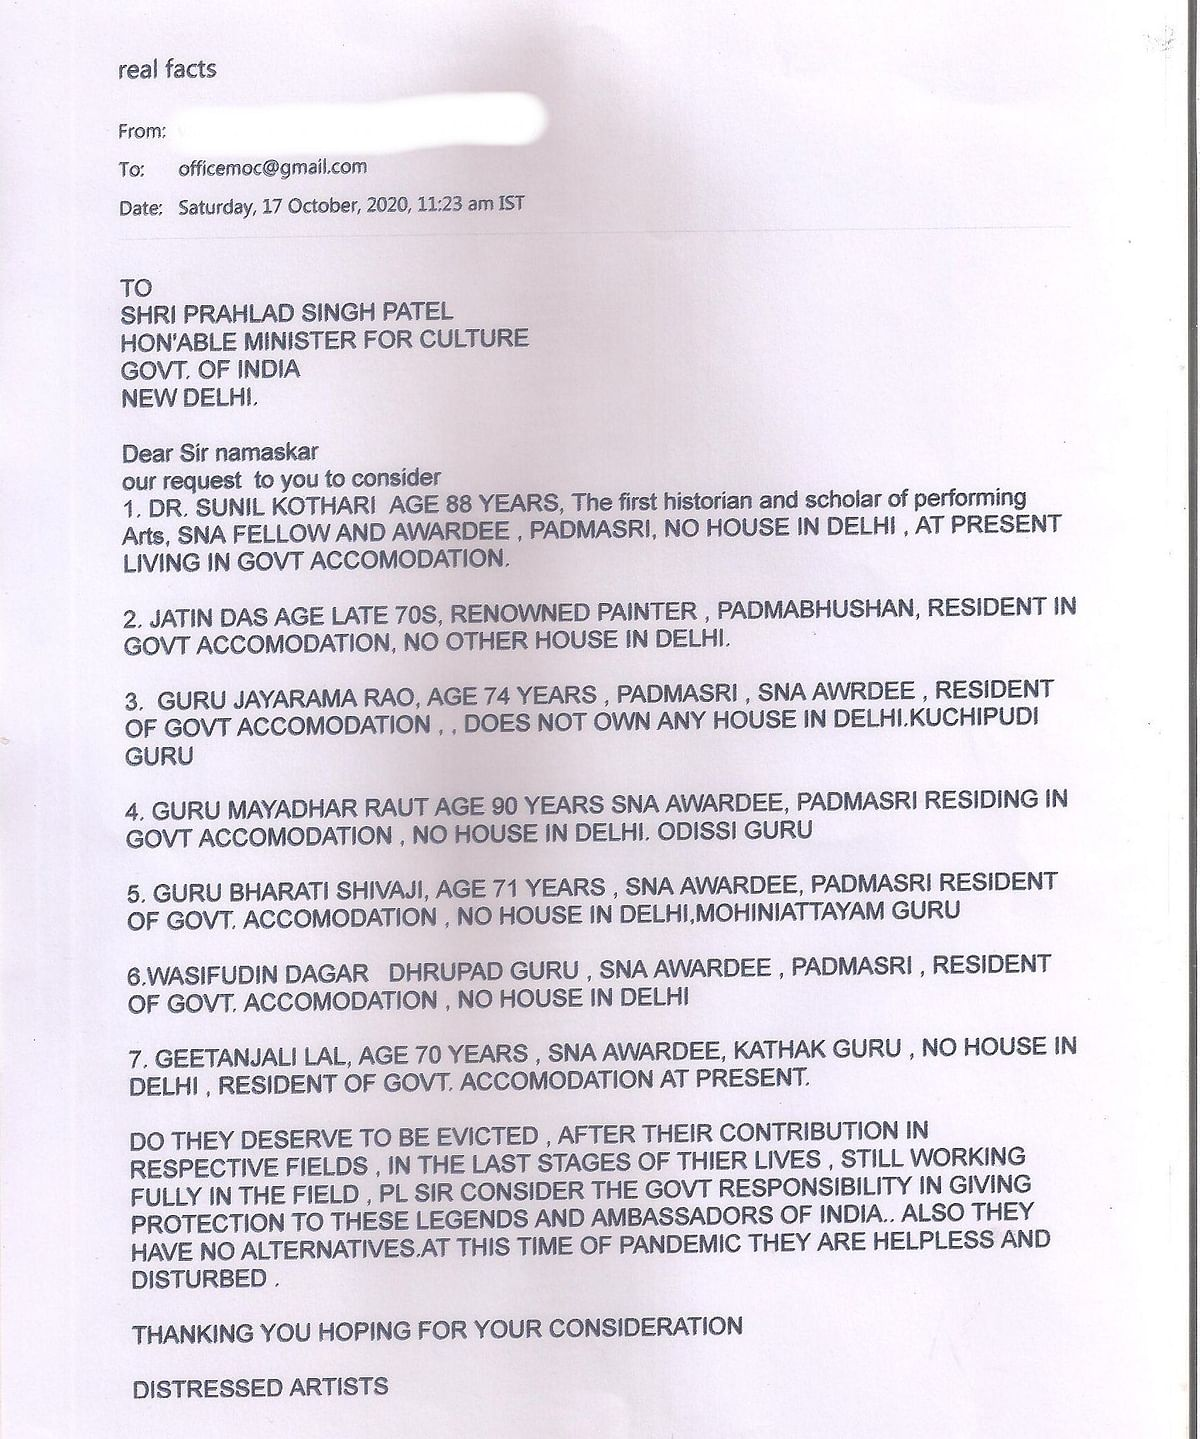 One of the letters sent to the Ministry of Culture on 17 October.